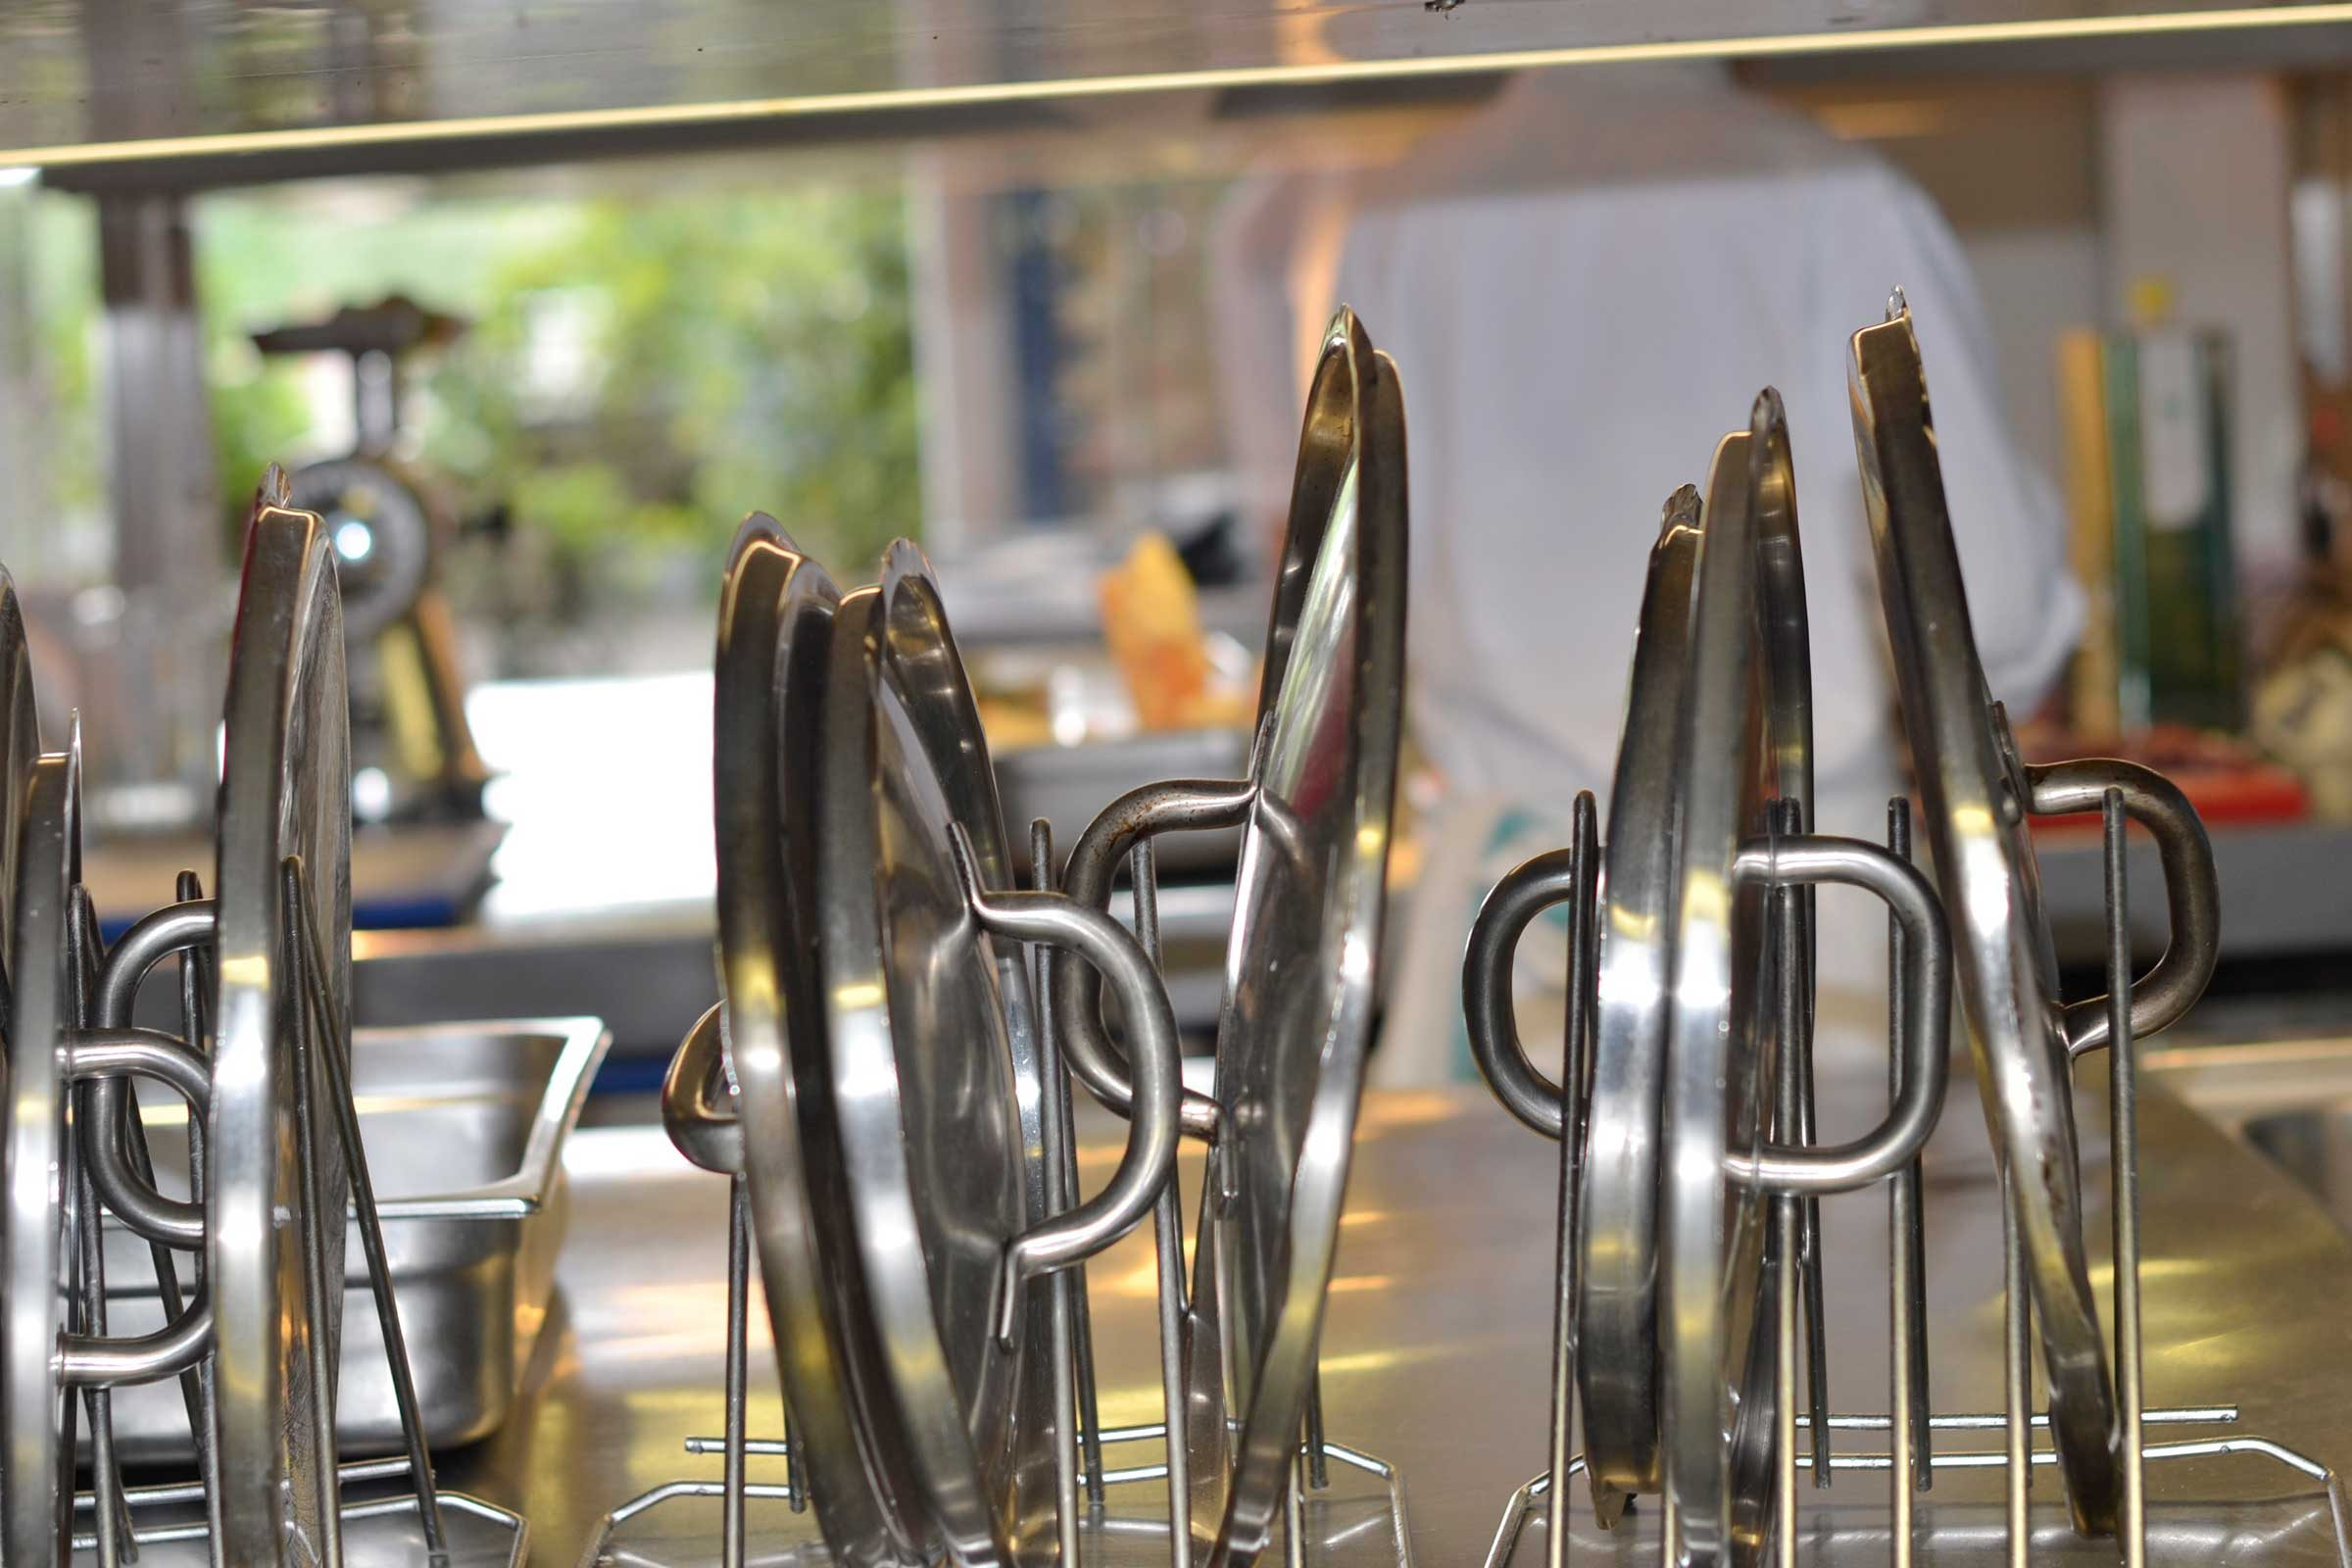 Pots And Pans Storage Ideas To Take Note Of: How To Organize Pots And Pans